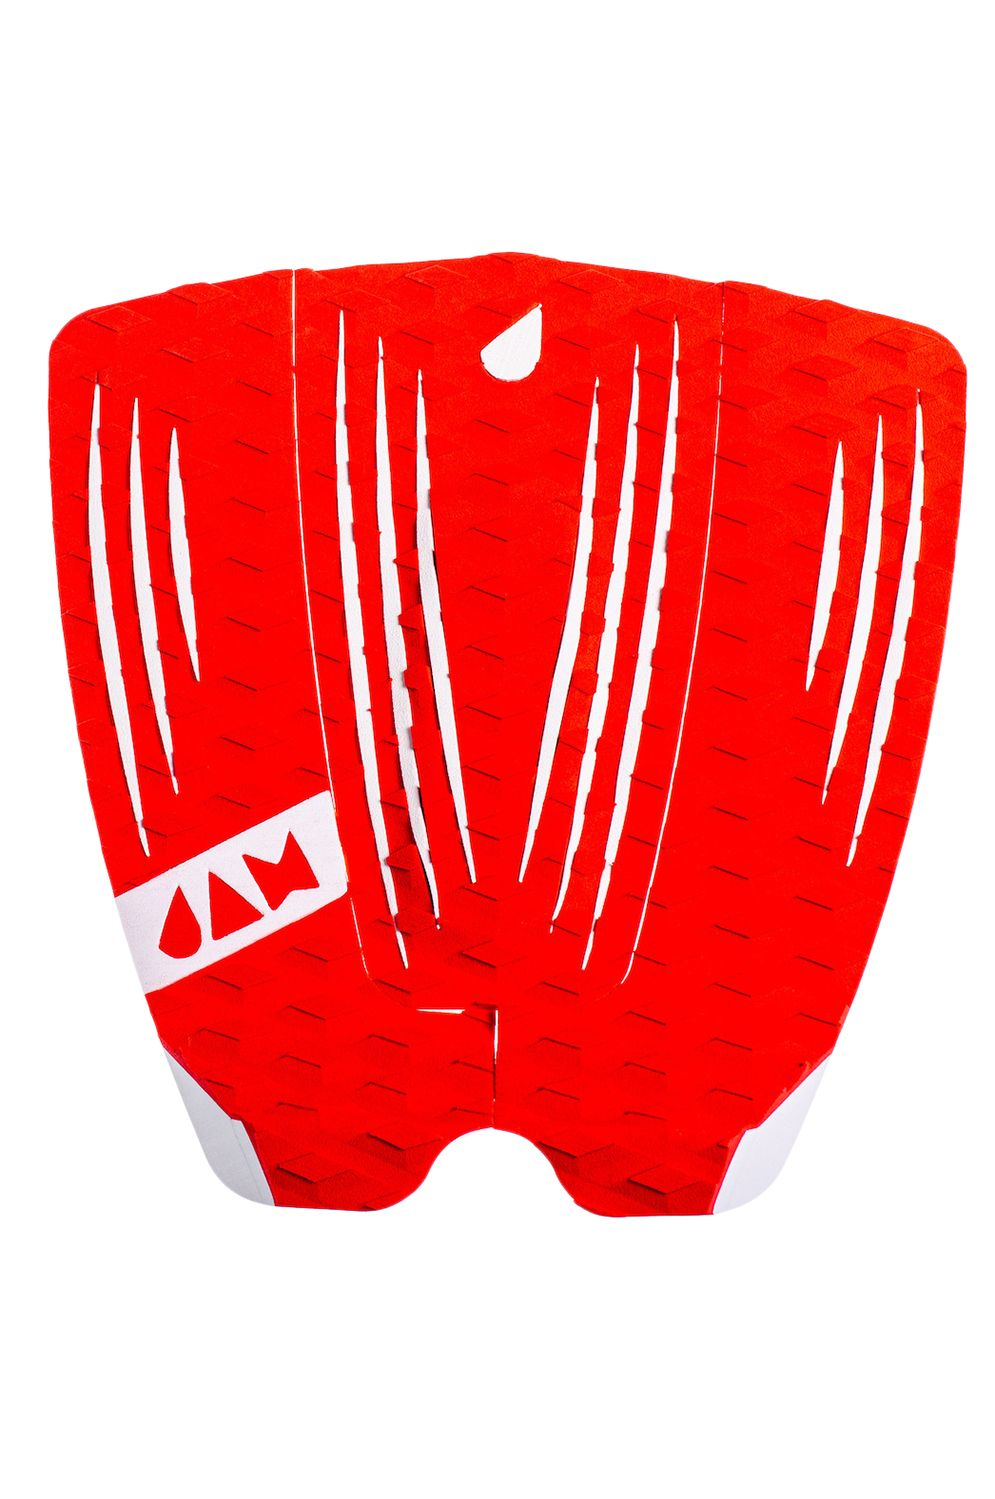 Deck Jam RECKLESS 3 PIECE TRACTION PAD Red/White Stripes